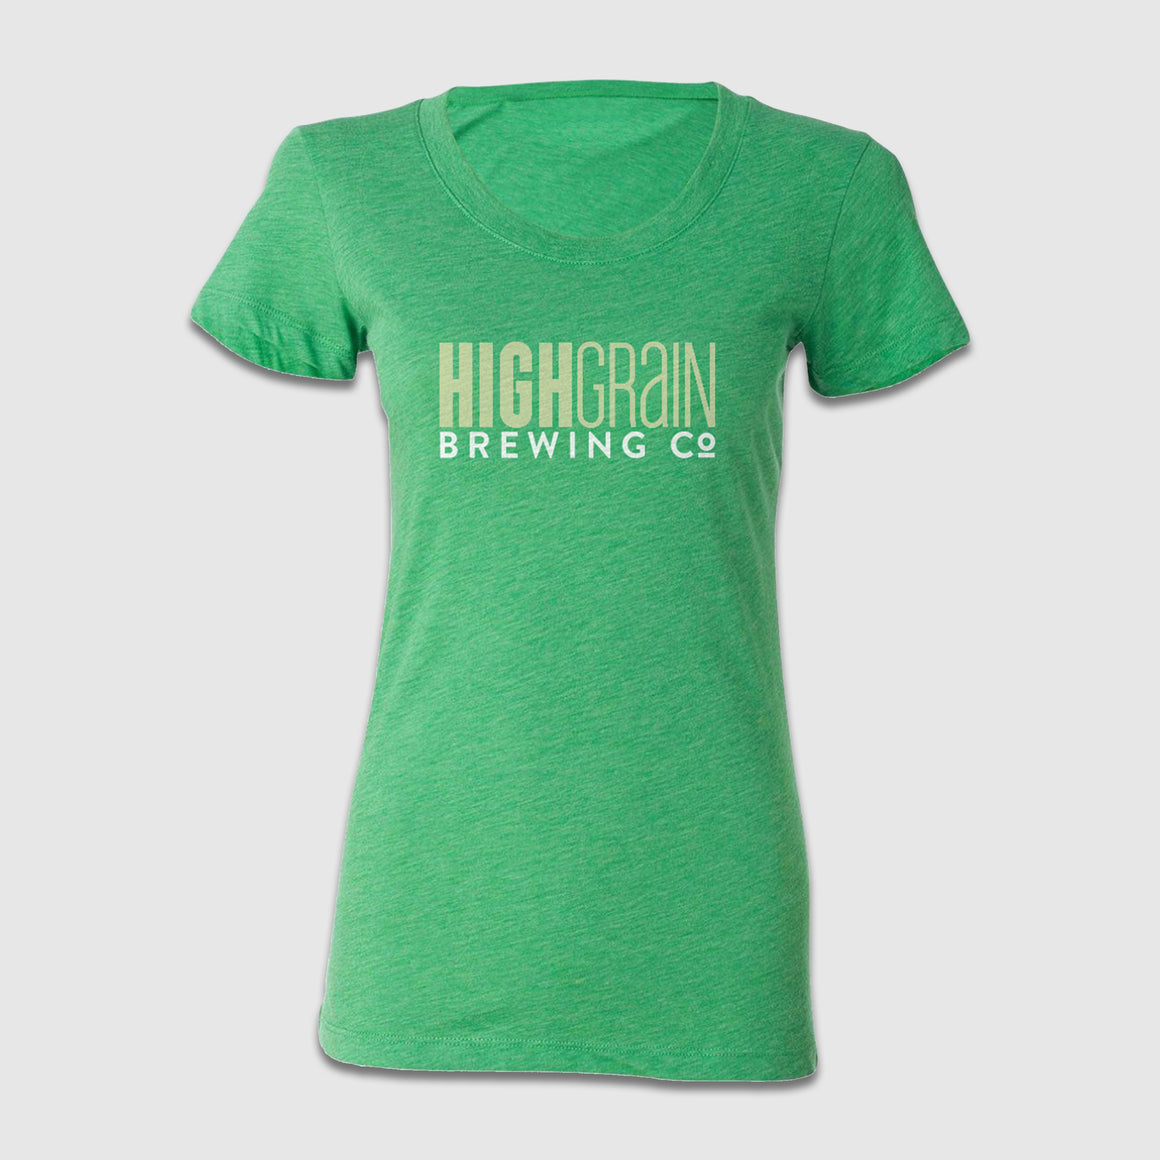 Women's Scoop Neck High Grain Text Front & Back Design - Cincy Shirts